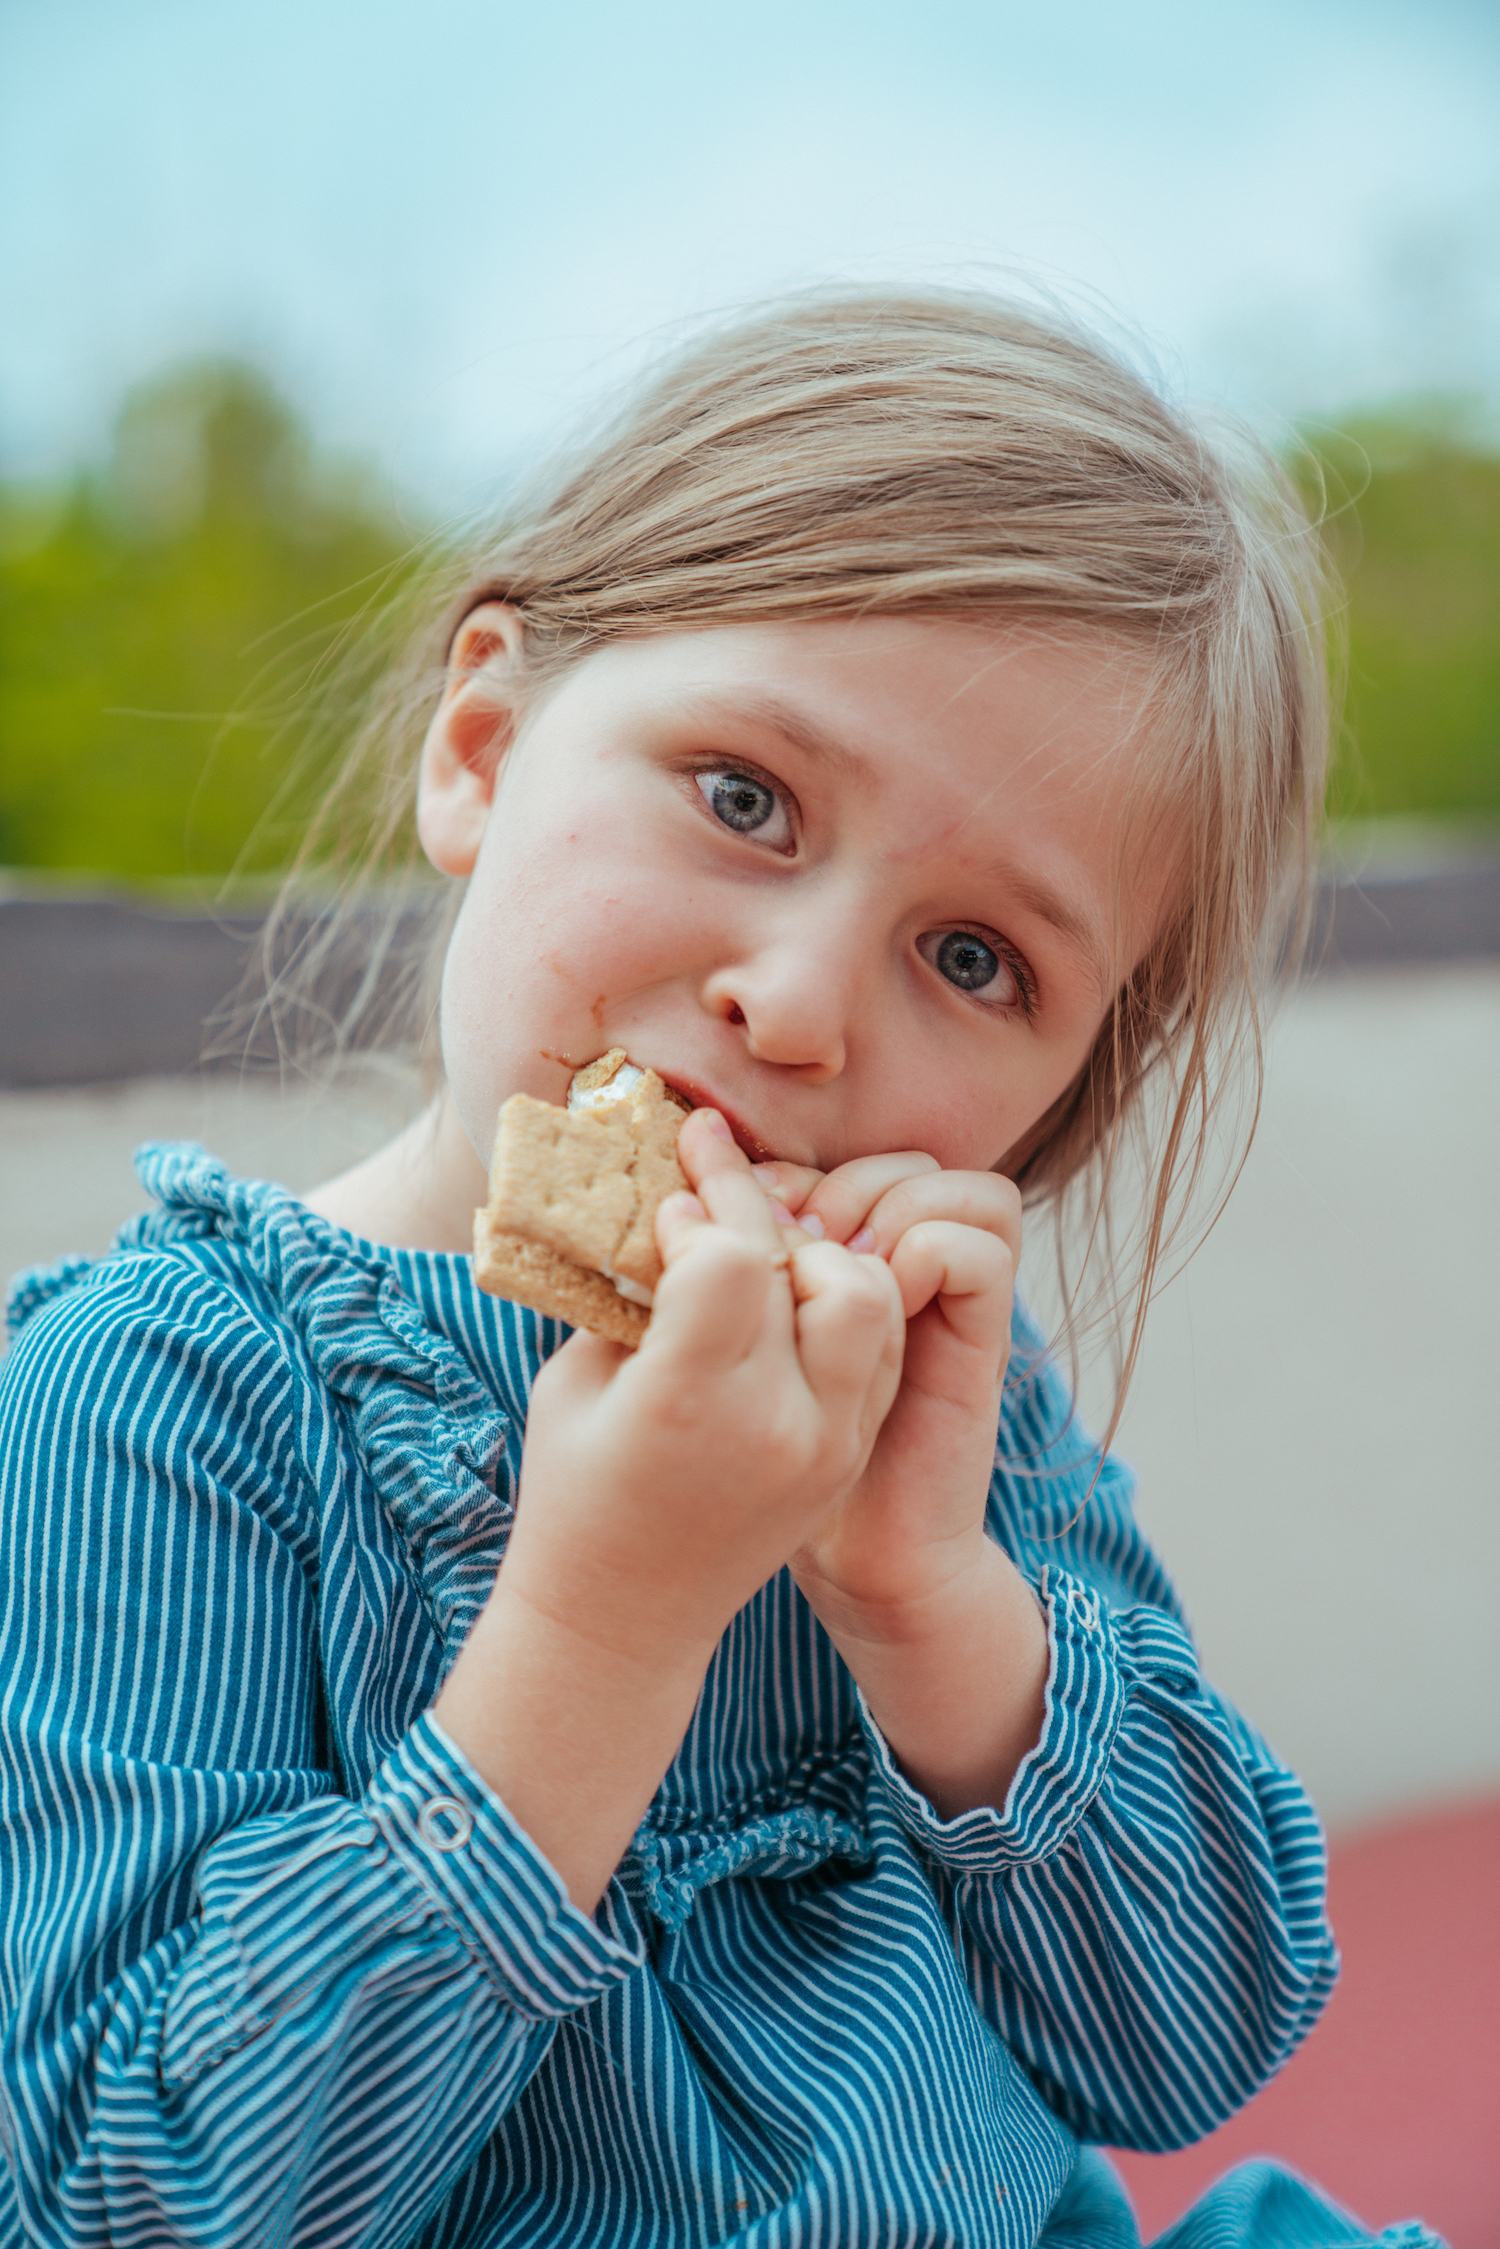 A little girl eating smores